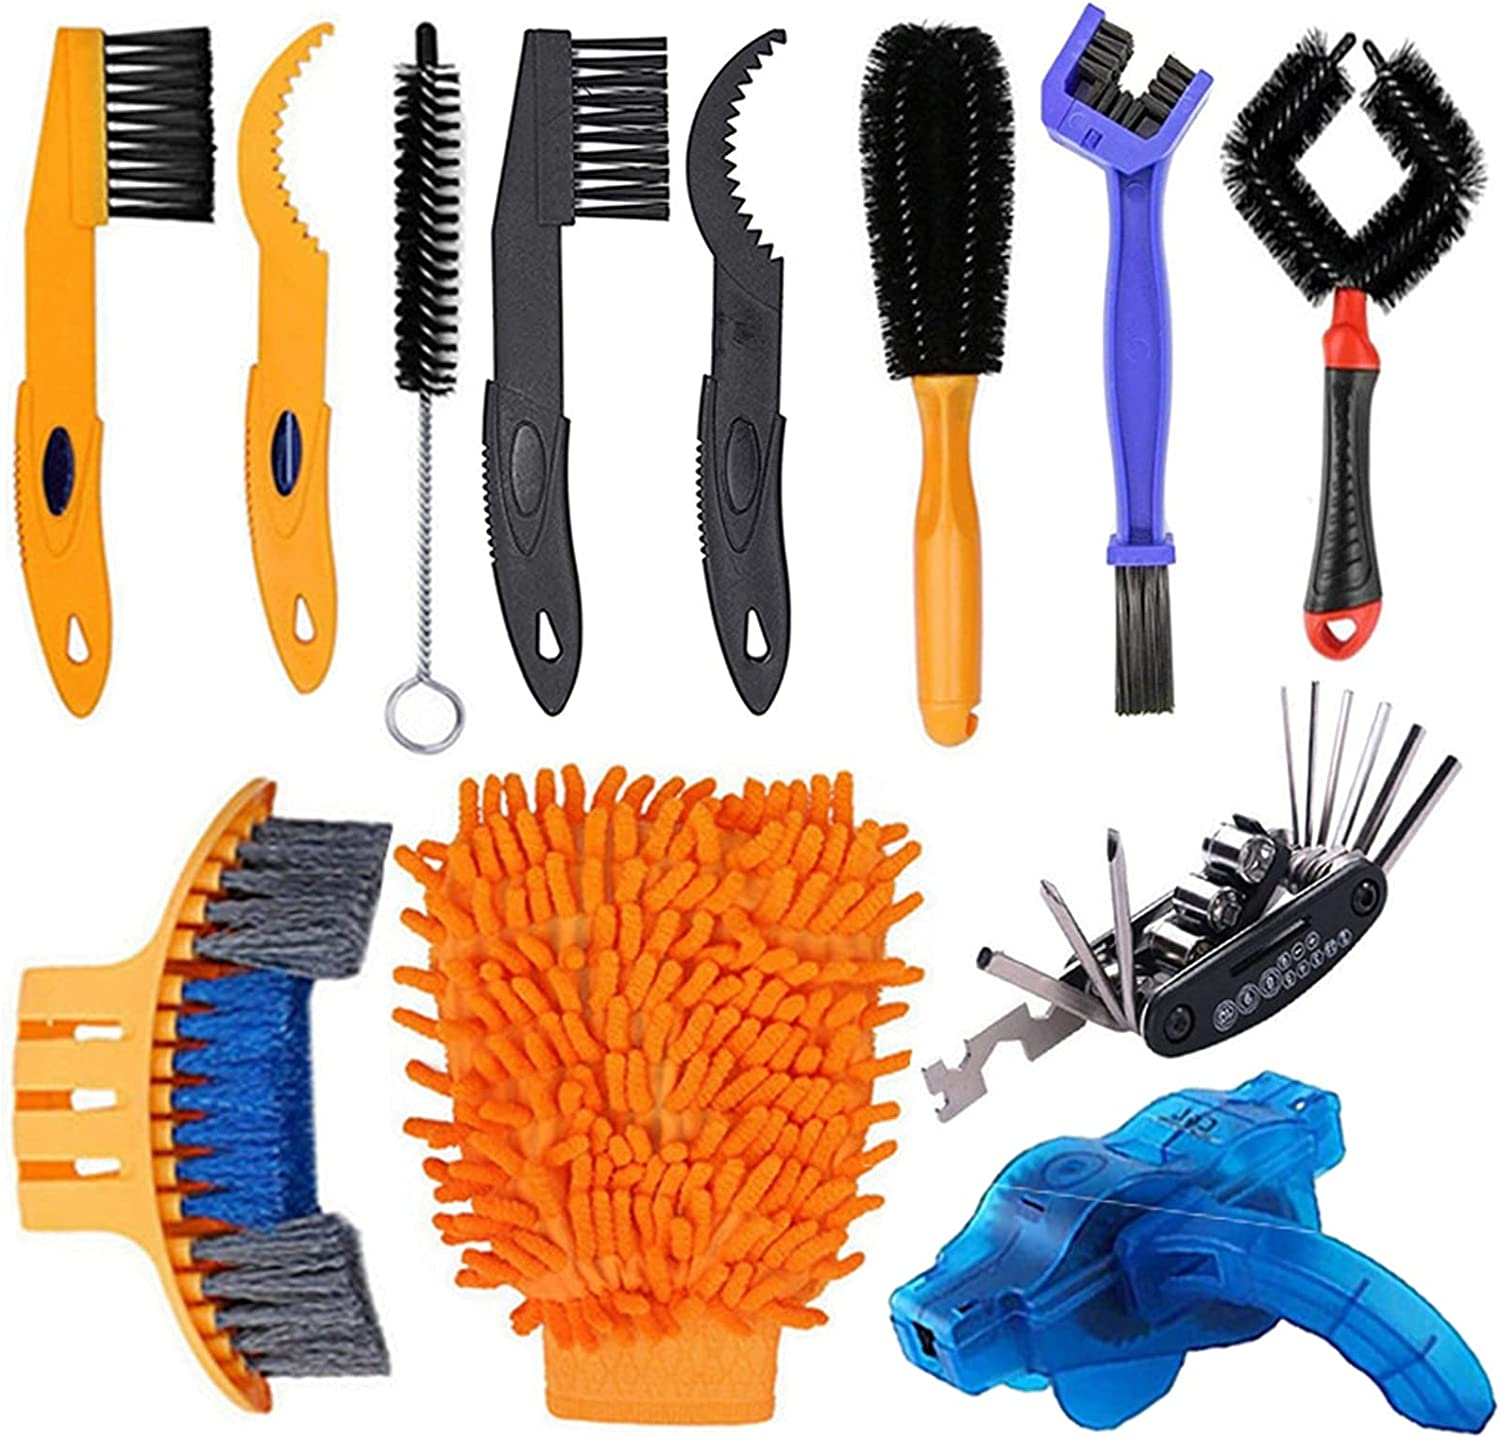 Bicycle Chain Cleaner Bike Cleaning Ch Tool Max 68% OFF Kit Washing Ranking TOP6